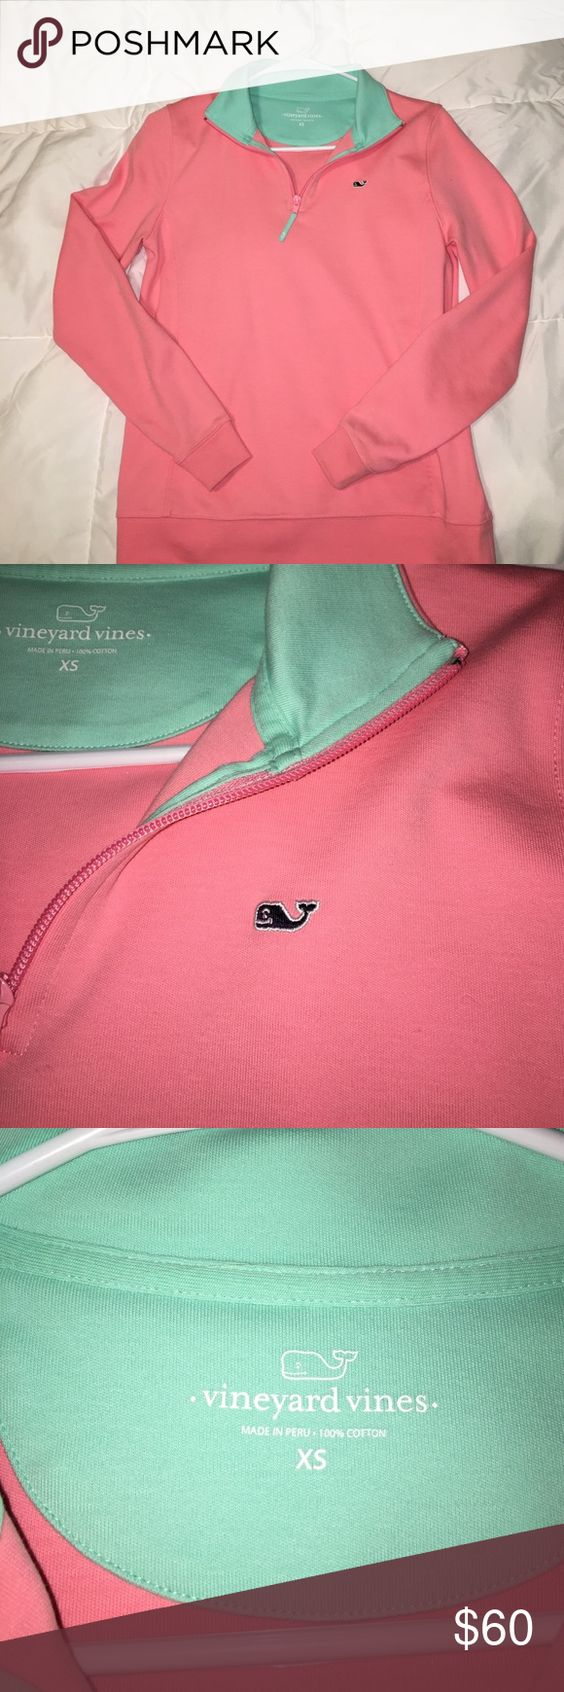 NEW Vineyard Vines Pullover! Never worn vineyard vines Pullover! 100% cotton, super soft and stretchy. Coral/pink in color Vineyard Vines Tops Sweatshirts & Hoodies